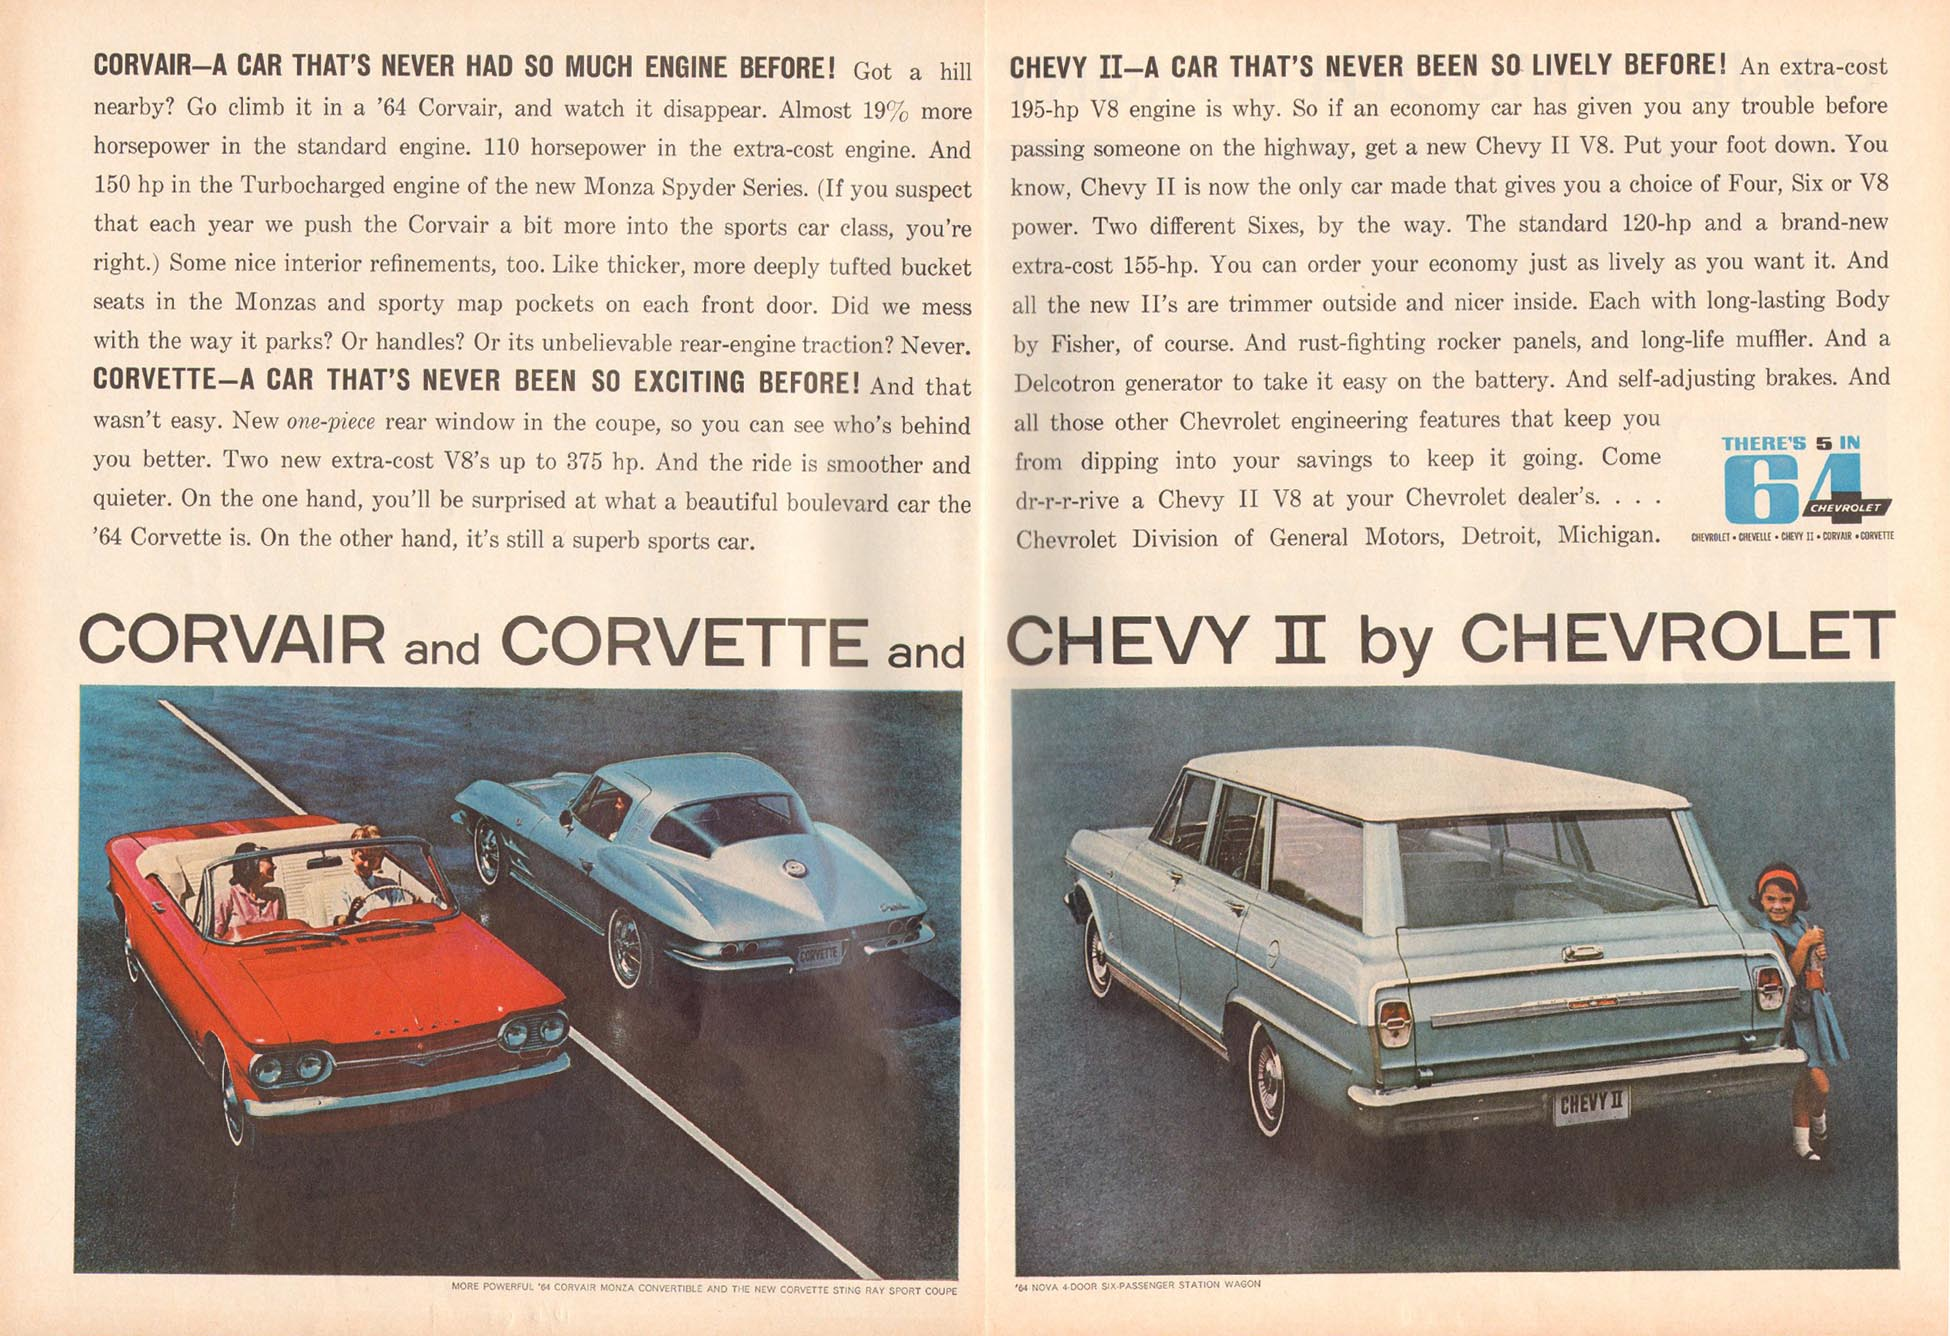 CHEVROLET AUTOMOBILES TIME 10/04/1963